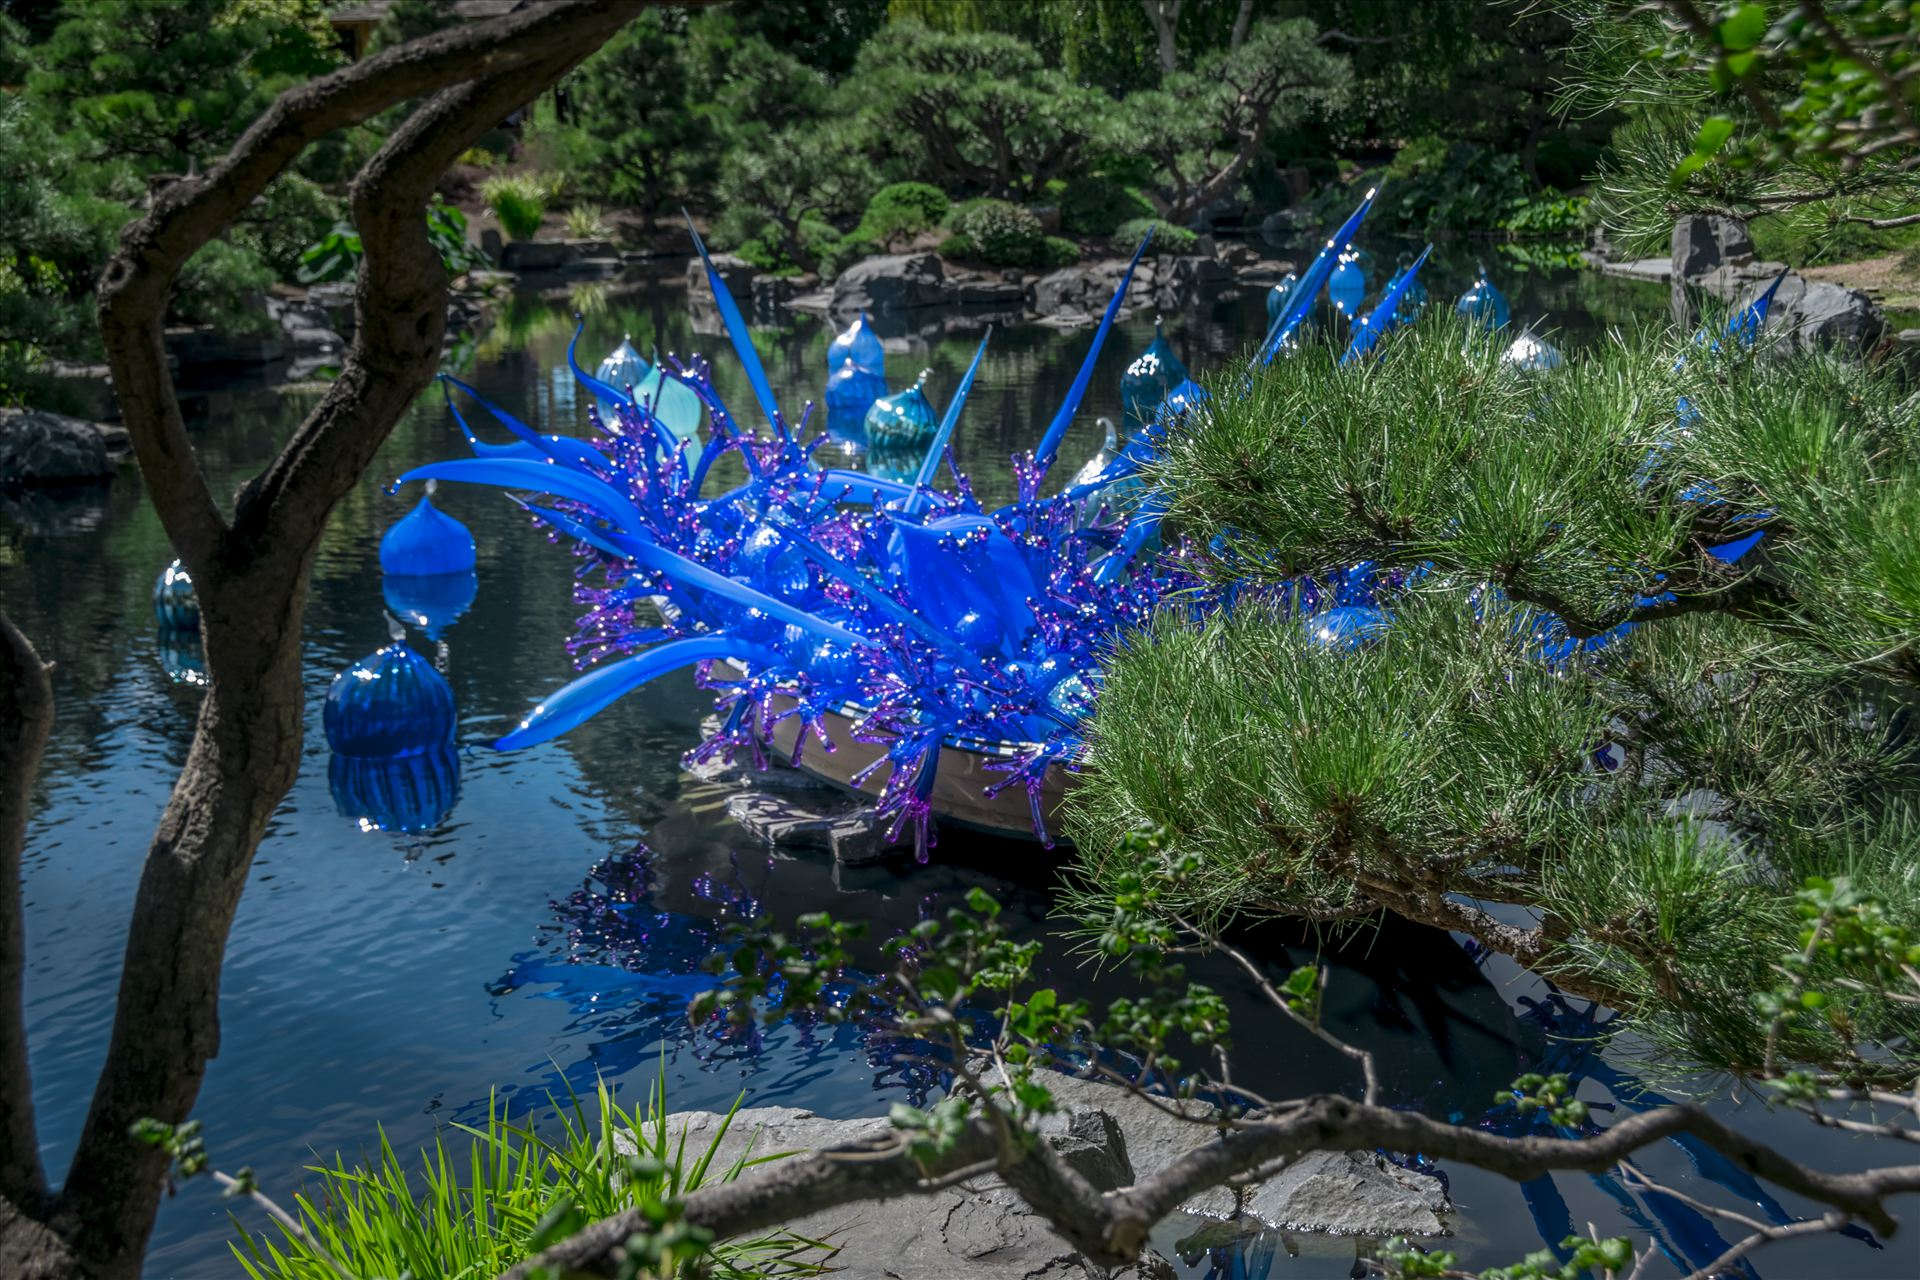 Chihuly Blue Boat 2.jpg -  by Dennis Rose